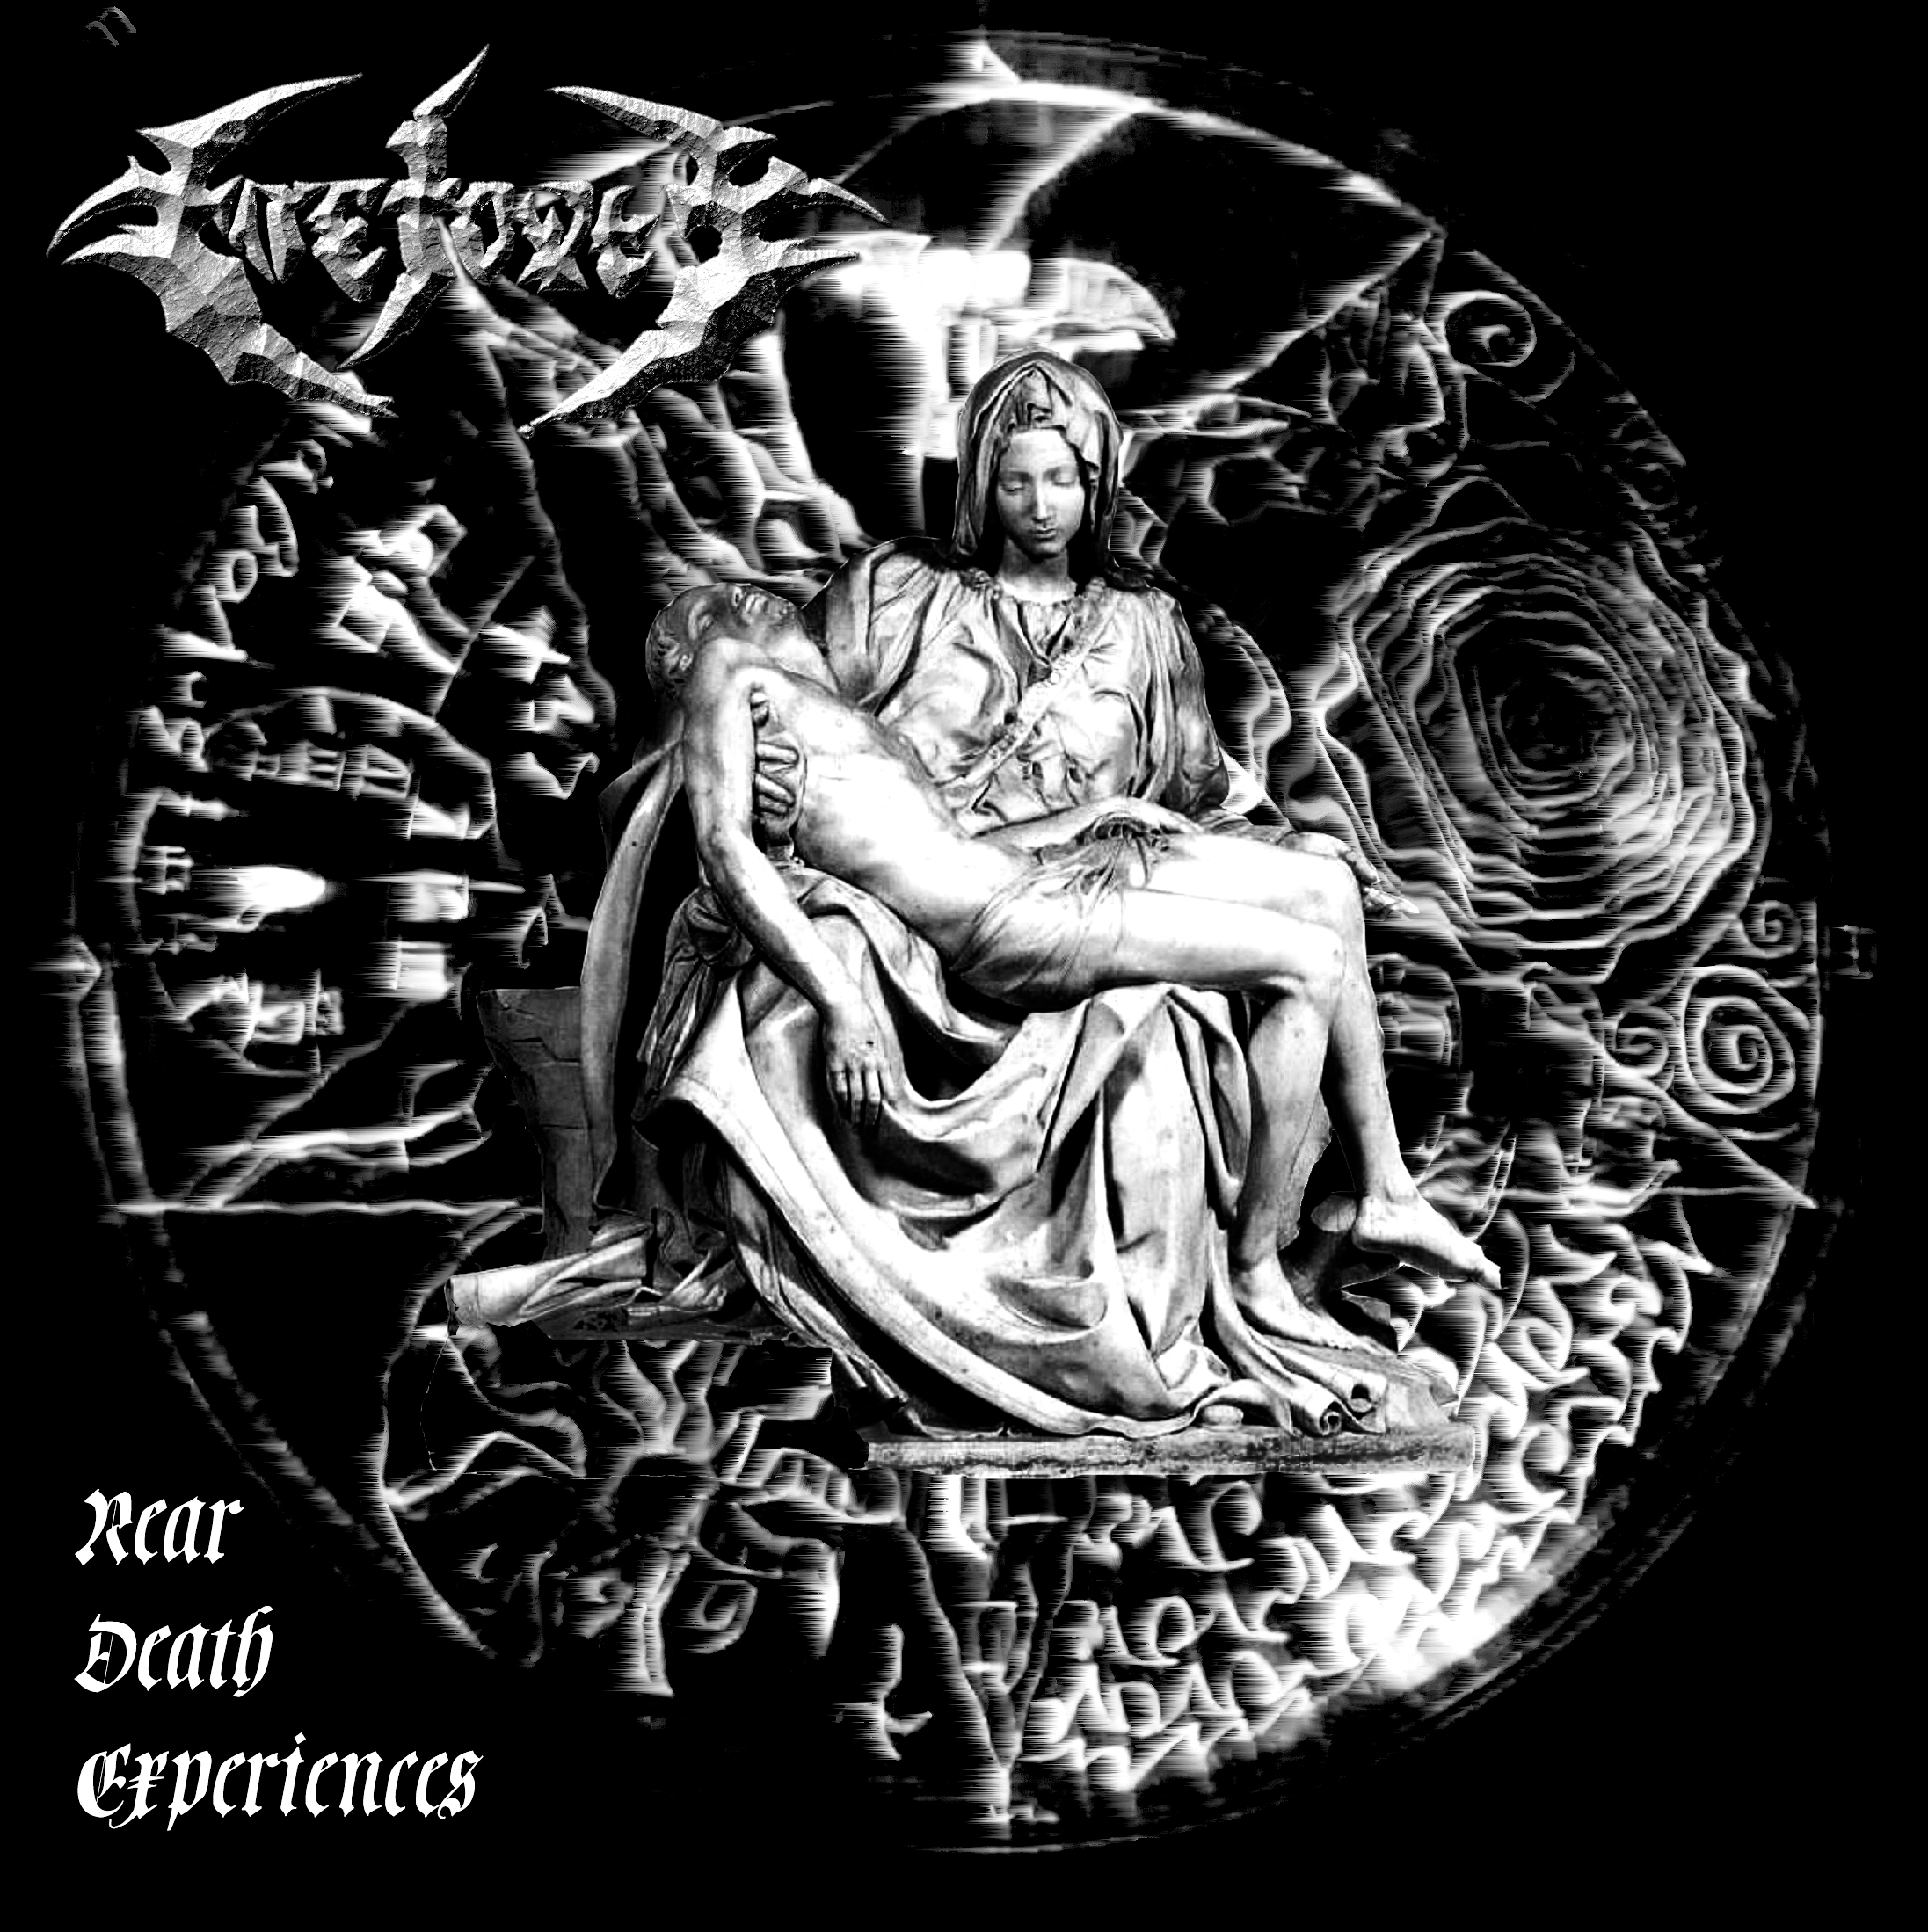 Firetower - Near Death Experiences